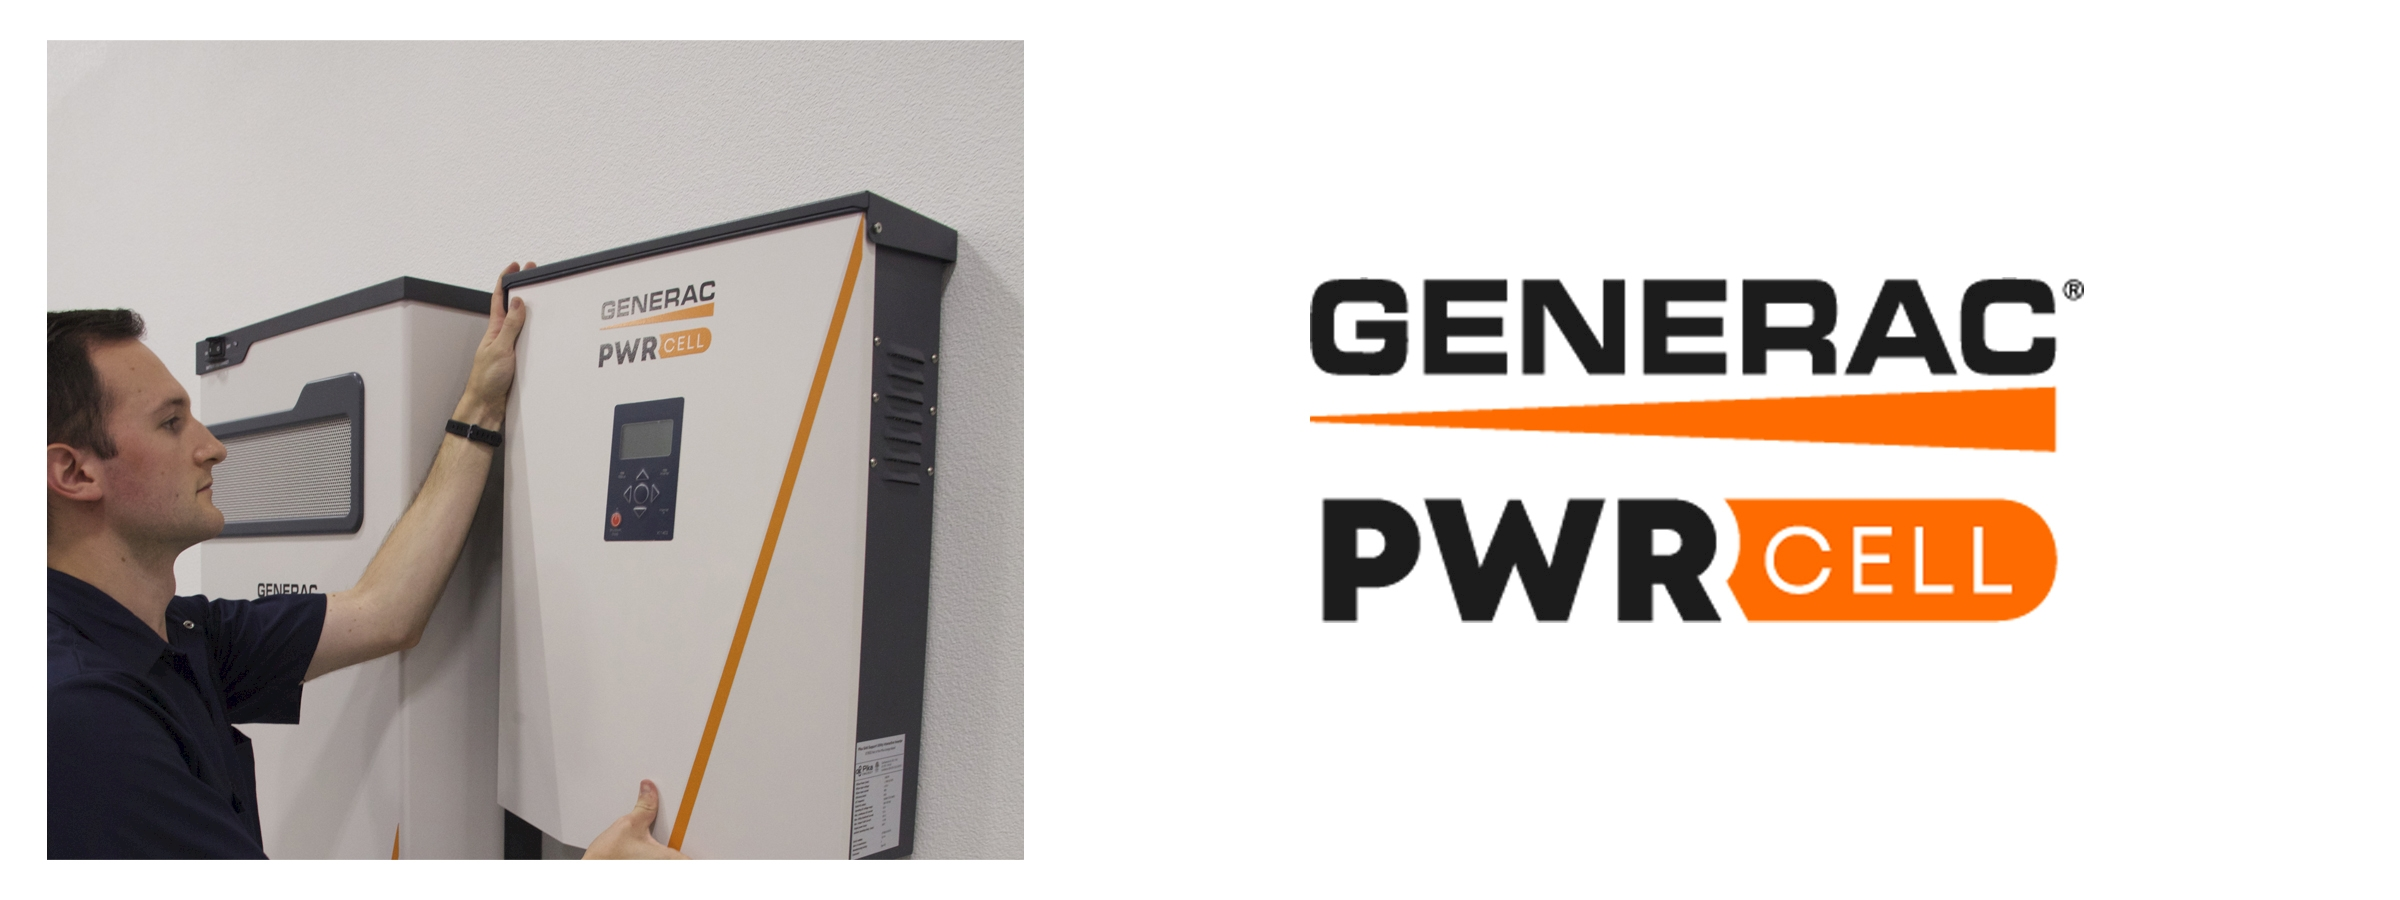 Boston Solar announces a partnership with Generac to offer PWRcell solar batteries